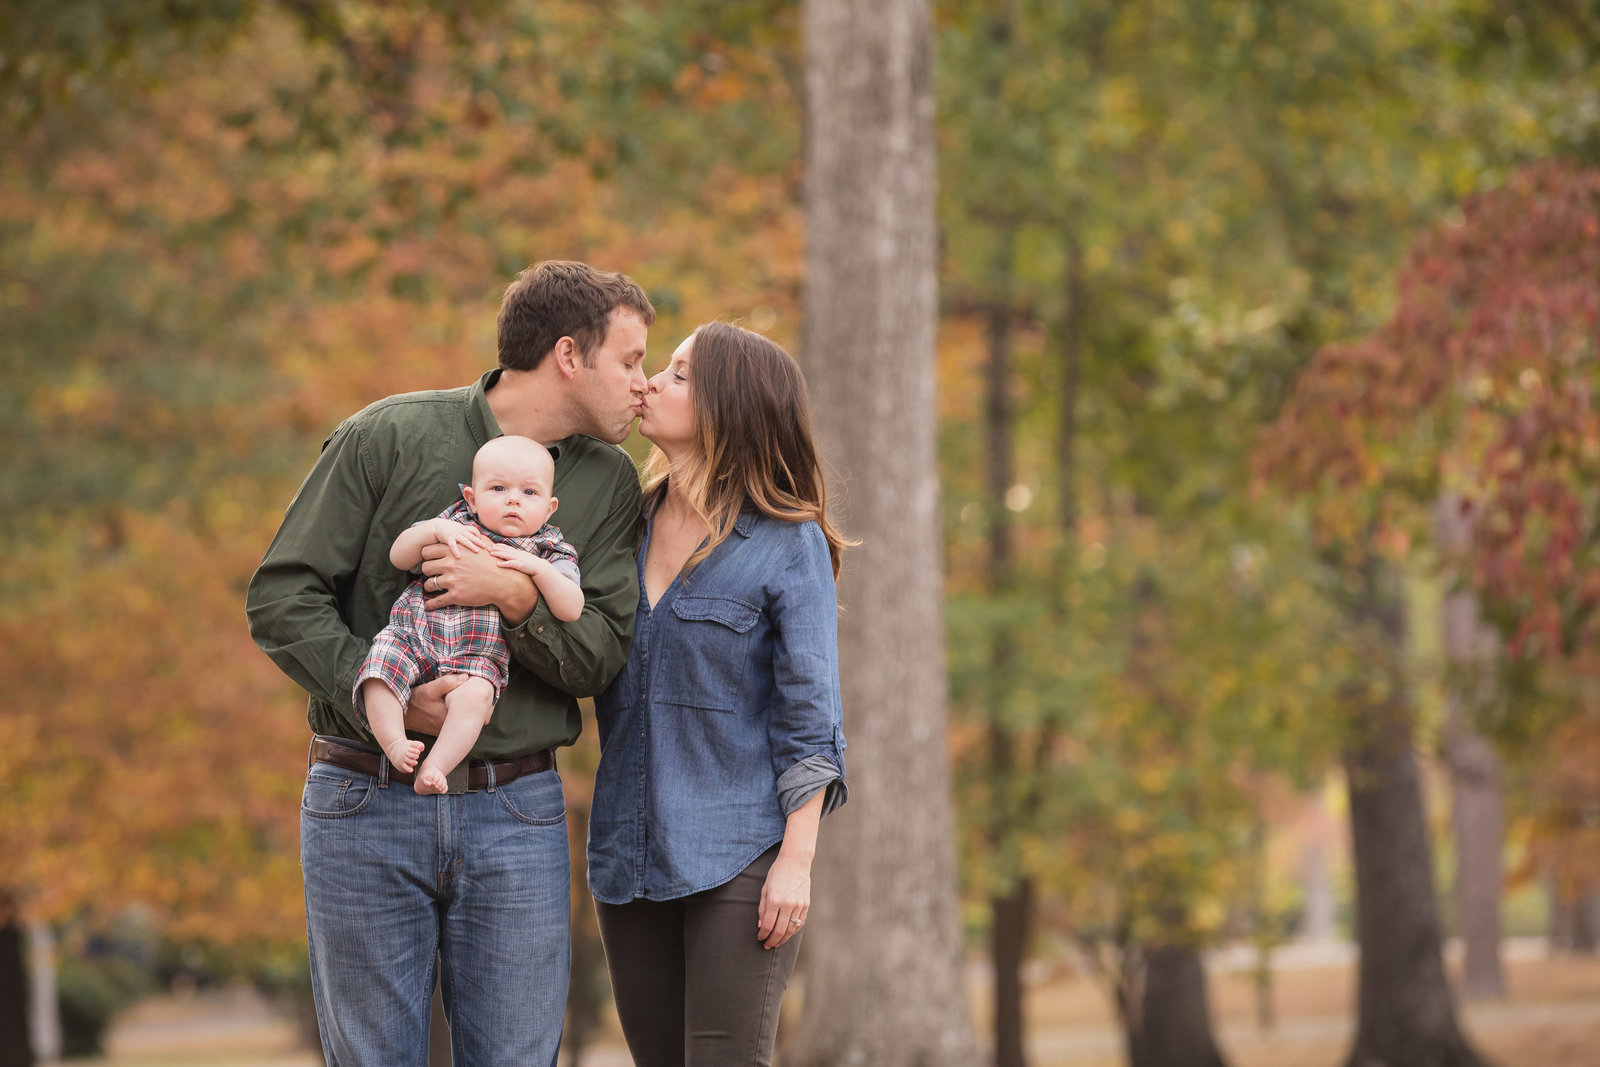 Colorful family portrait in a fall setting